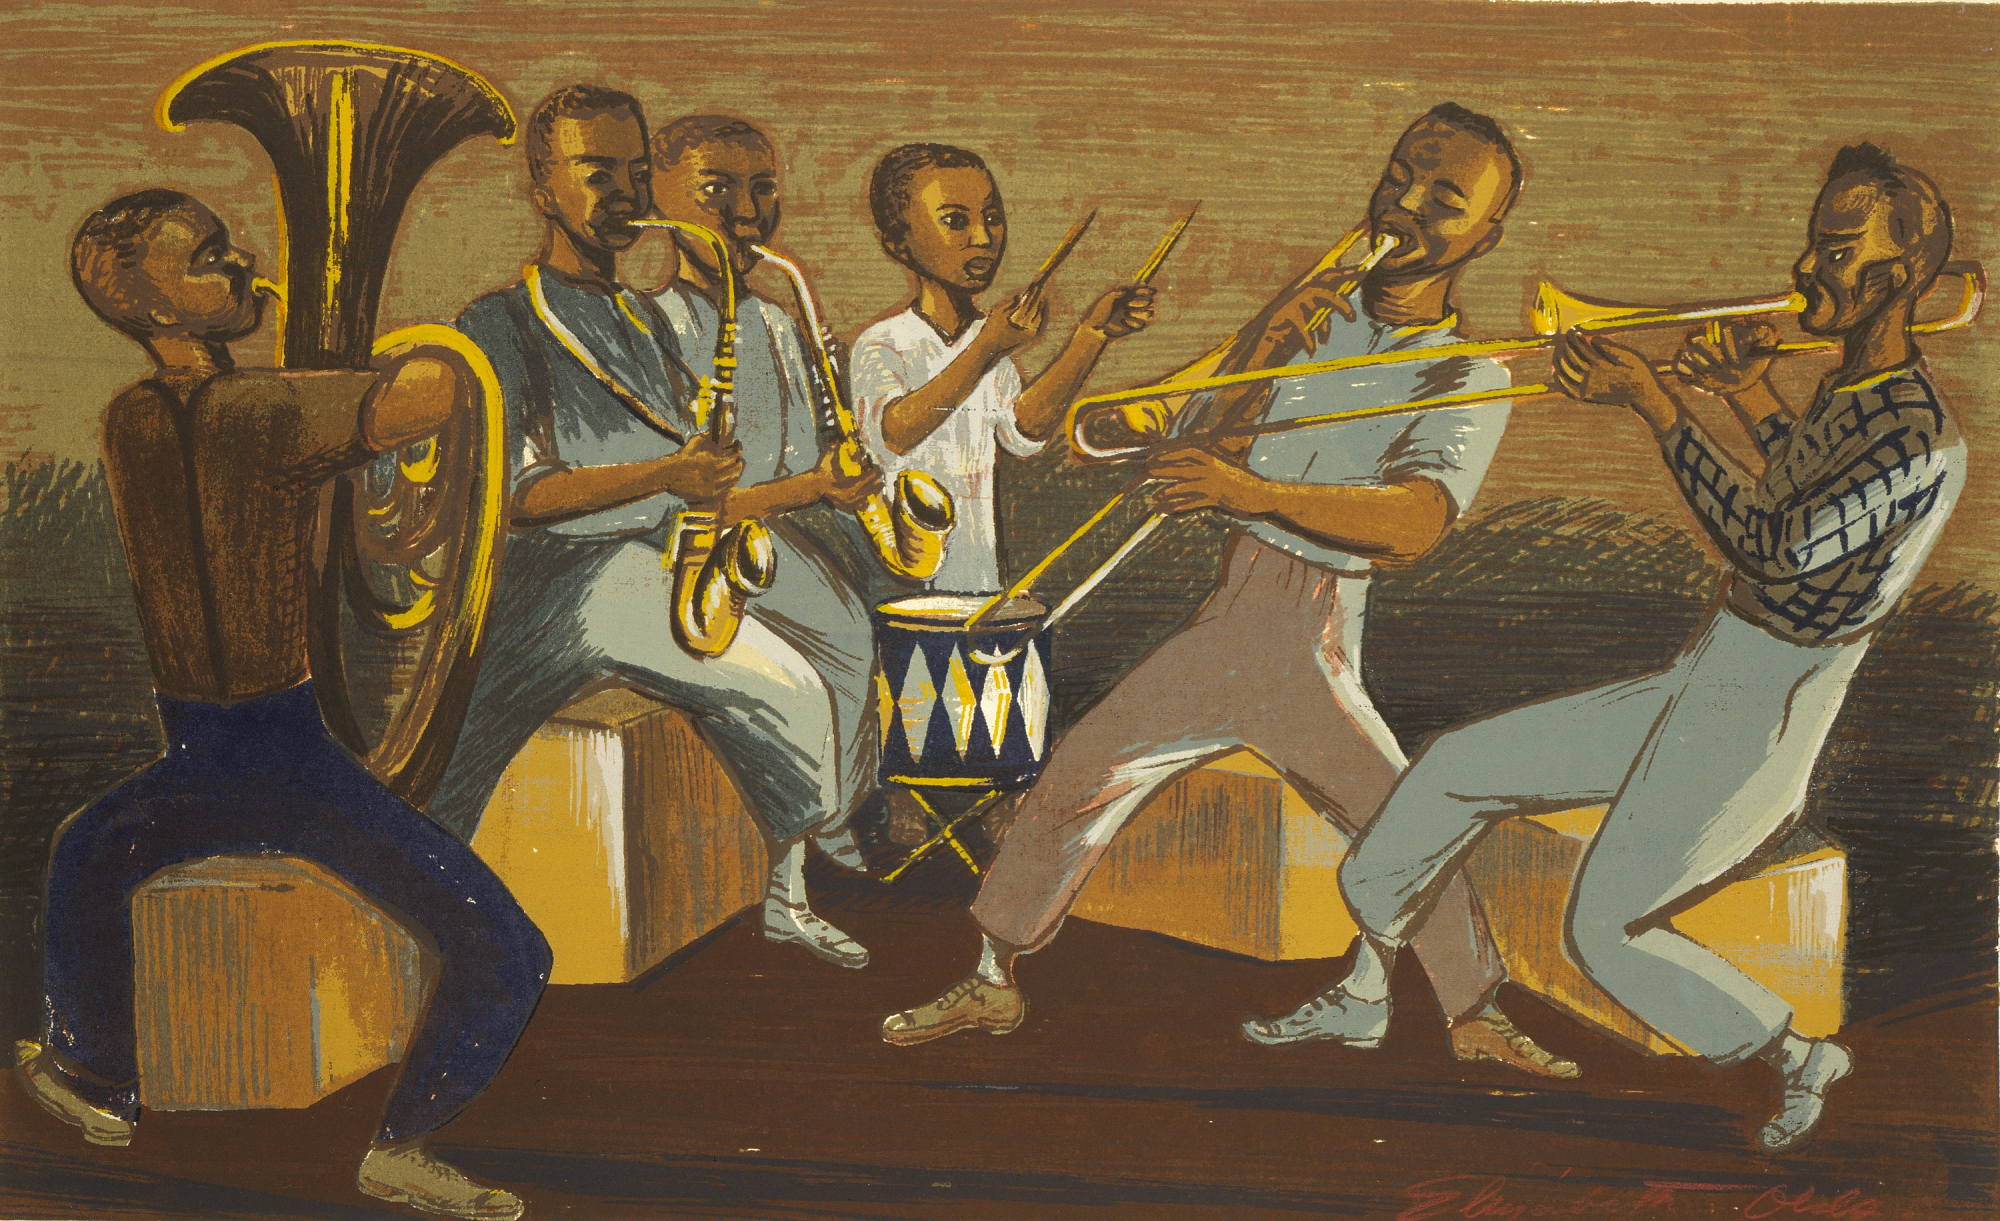 A drawing of a group of musicians, playing horns, saxophones, and a drum.